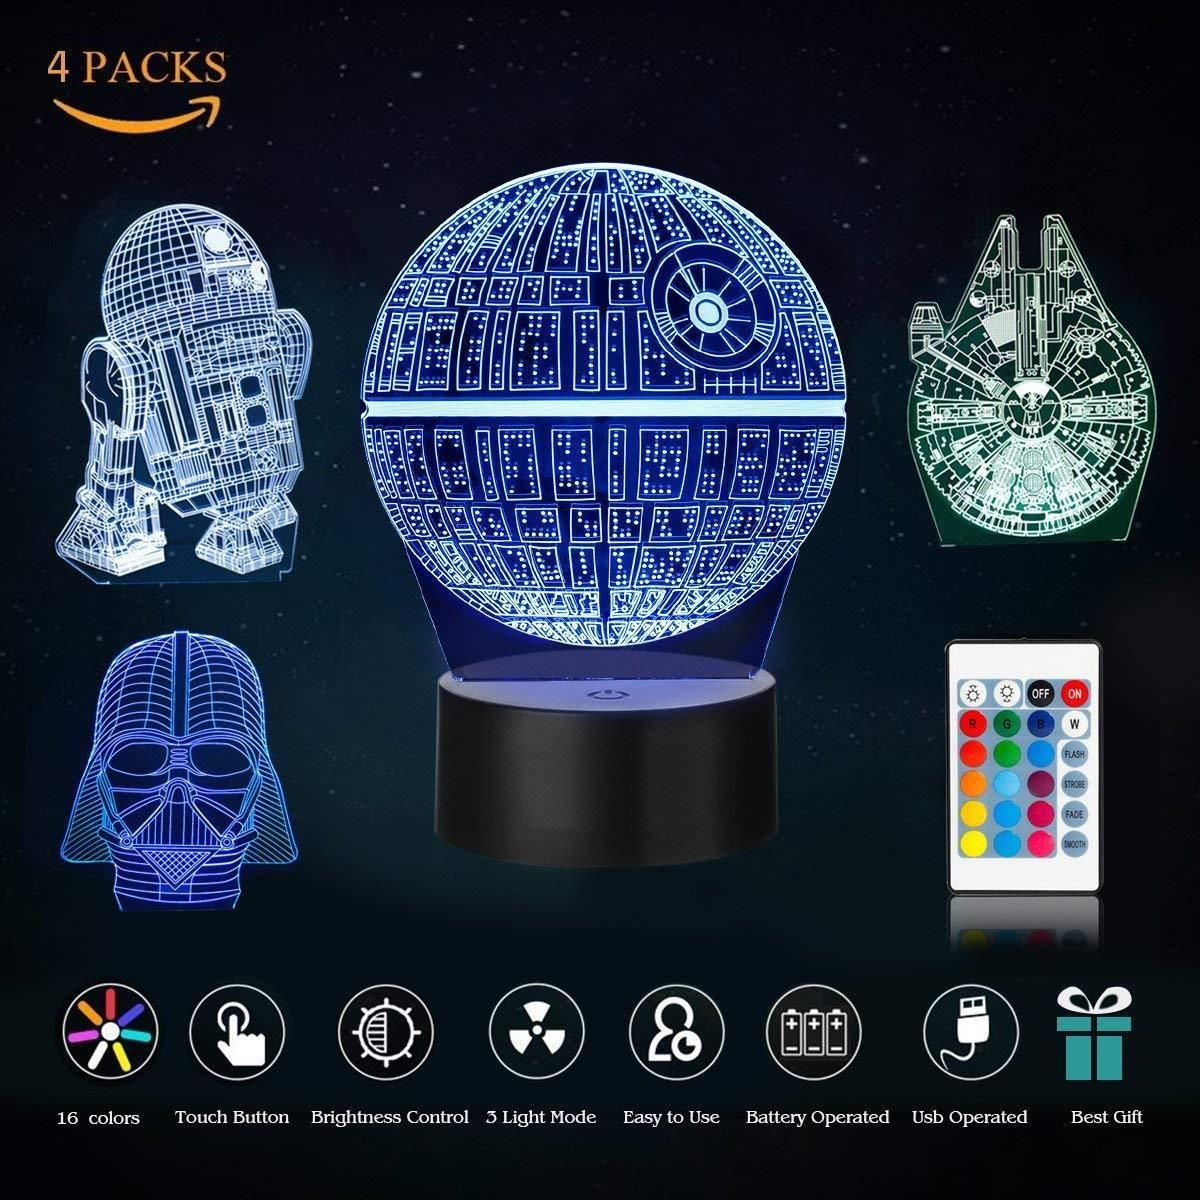 Rgb 3d Illusion Led Lamp Star Wars Desk Lantern Night Light Kids Cartoon Gifts Star Wars Gifts I Star Wars Night Light 3d Led Night Light Night Light Kids